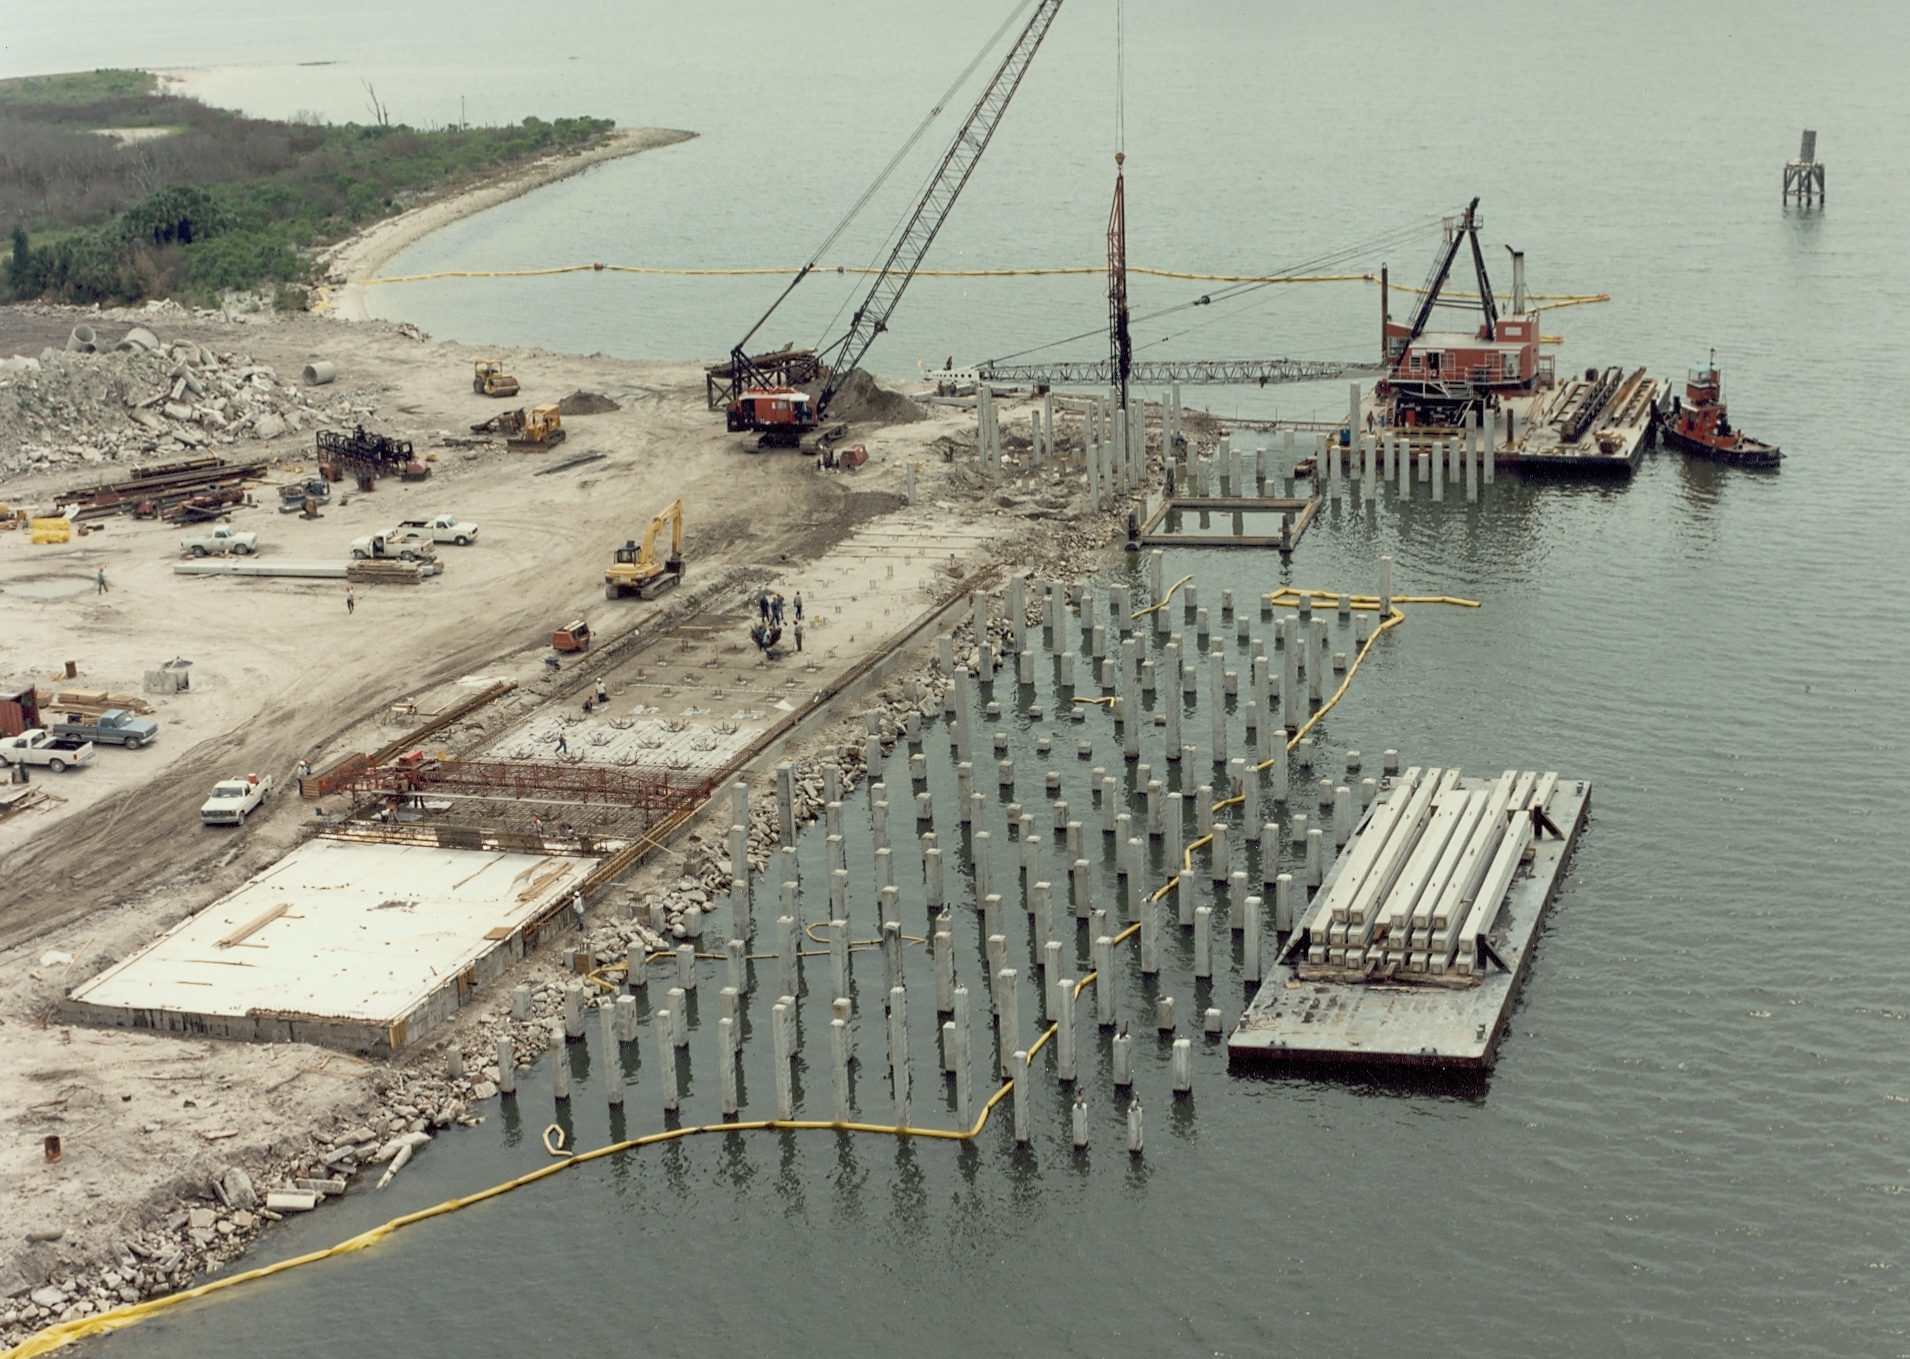 Pile driving operations in the Port of Tampa, Florida, United States.